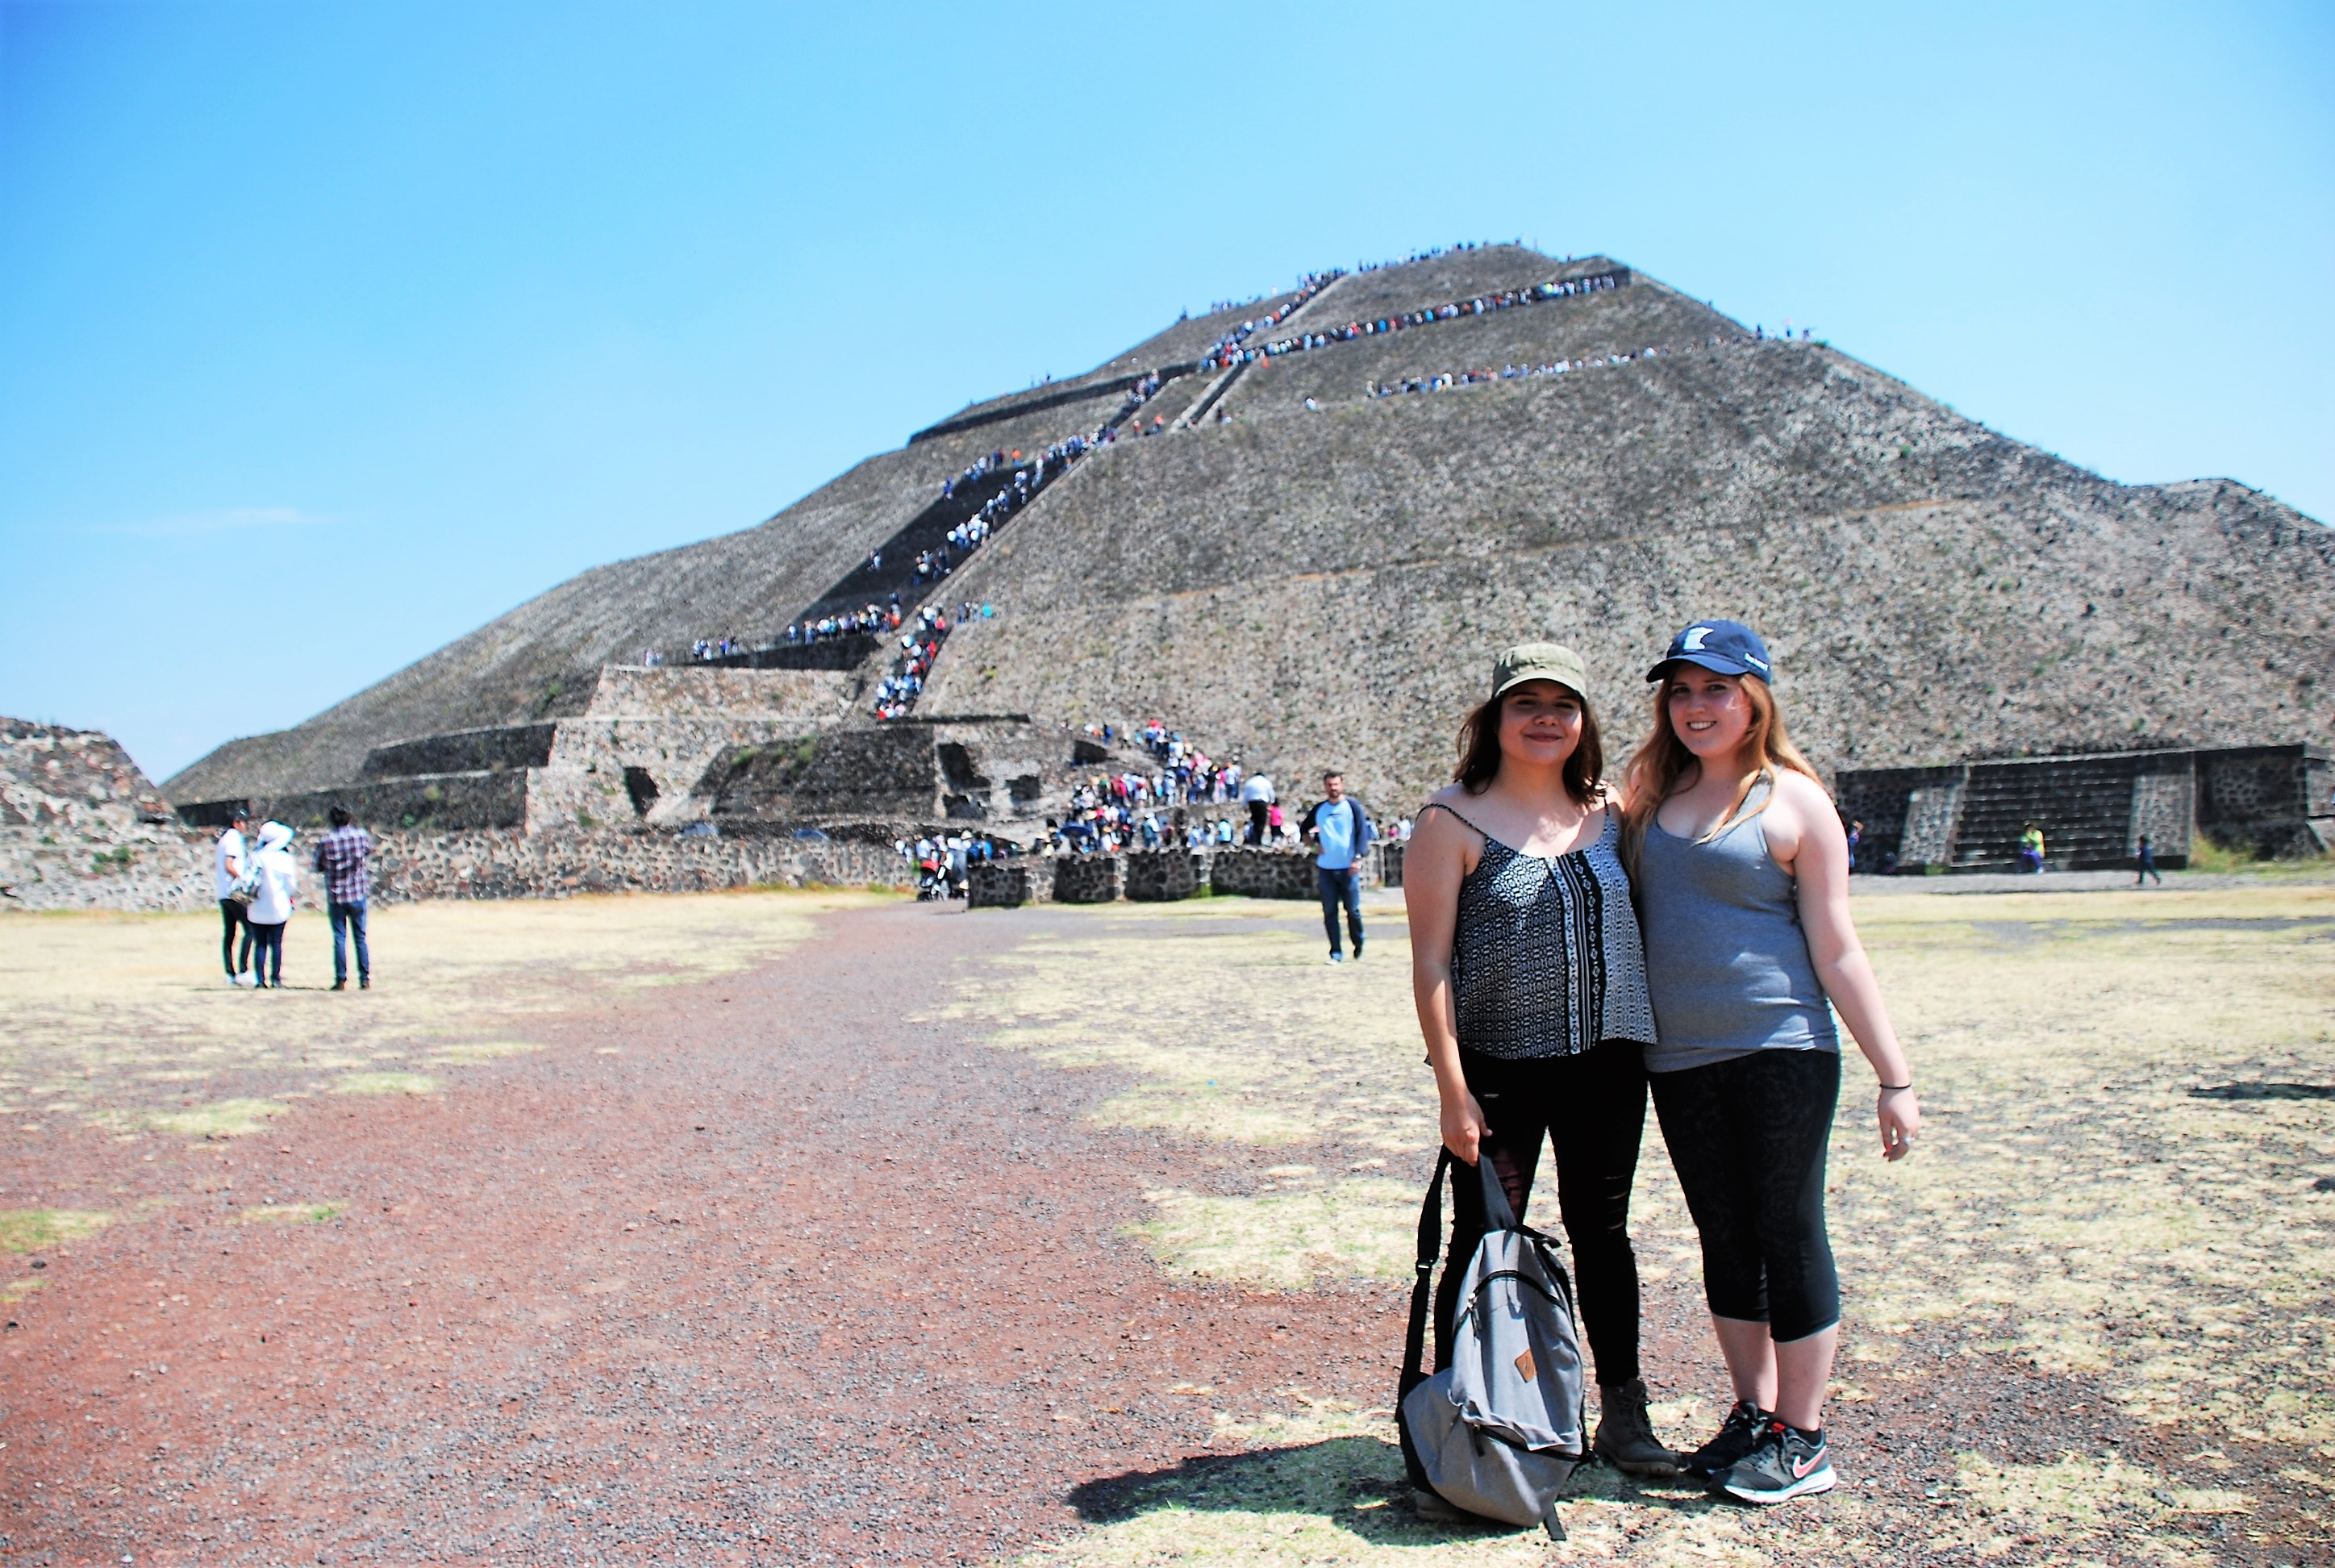 The student and her host sister in Teotihuacan